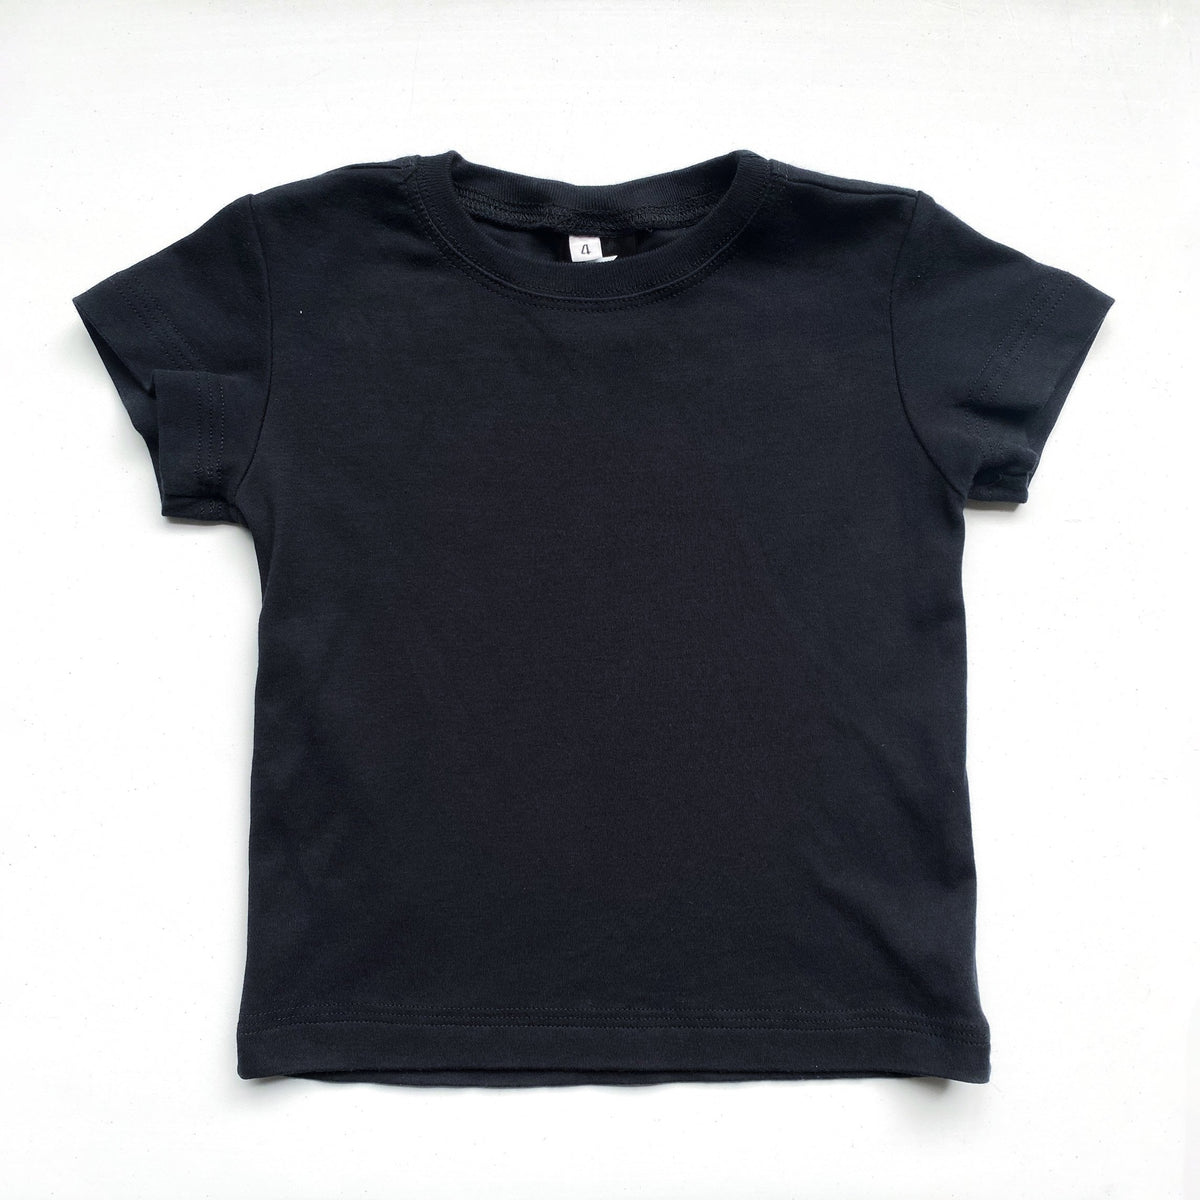 Kids' Classic color:Black Combed Cotton Kids' T-shirts New T-shirts